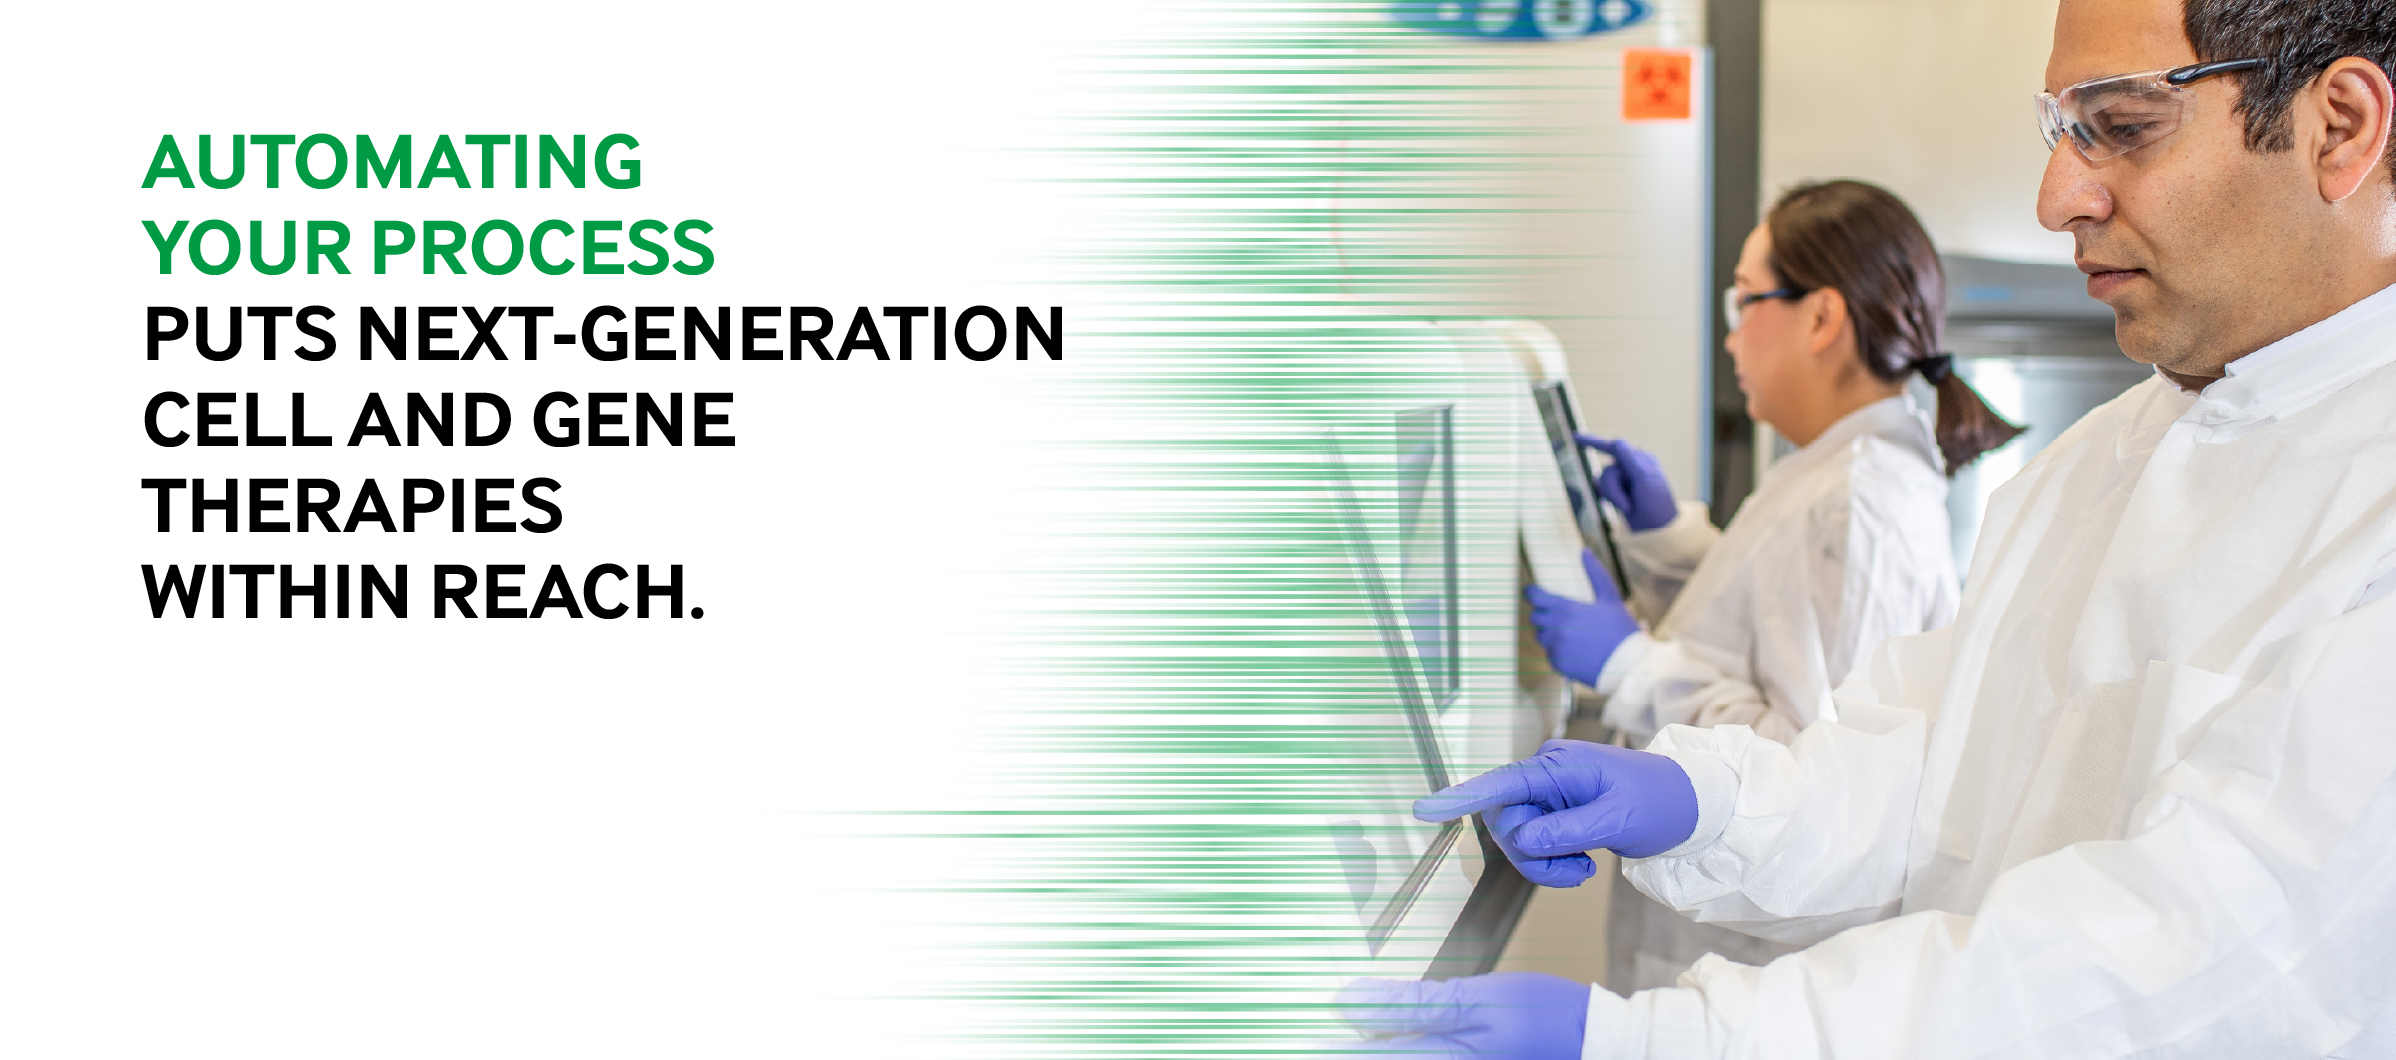 Automating your process puts next-generation cell and gene therapies within reach.